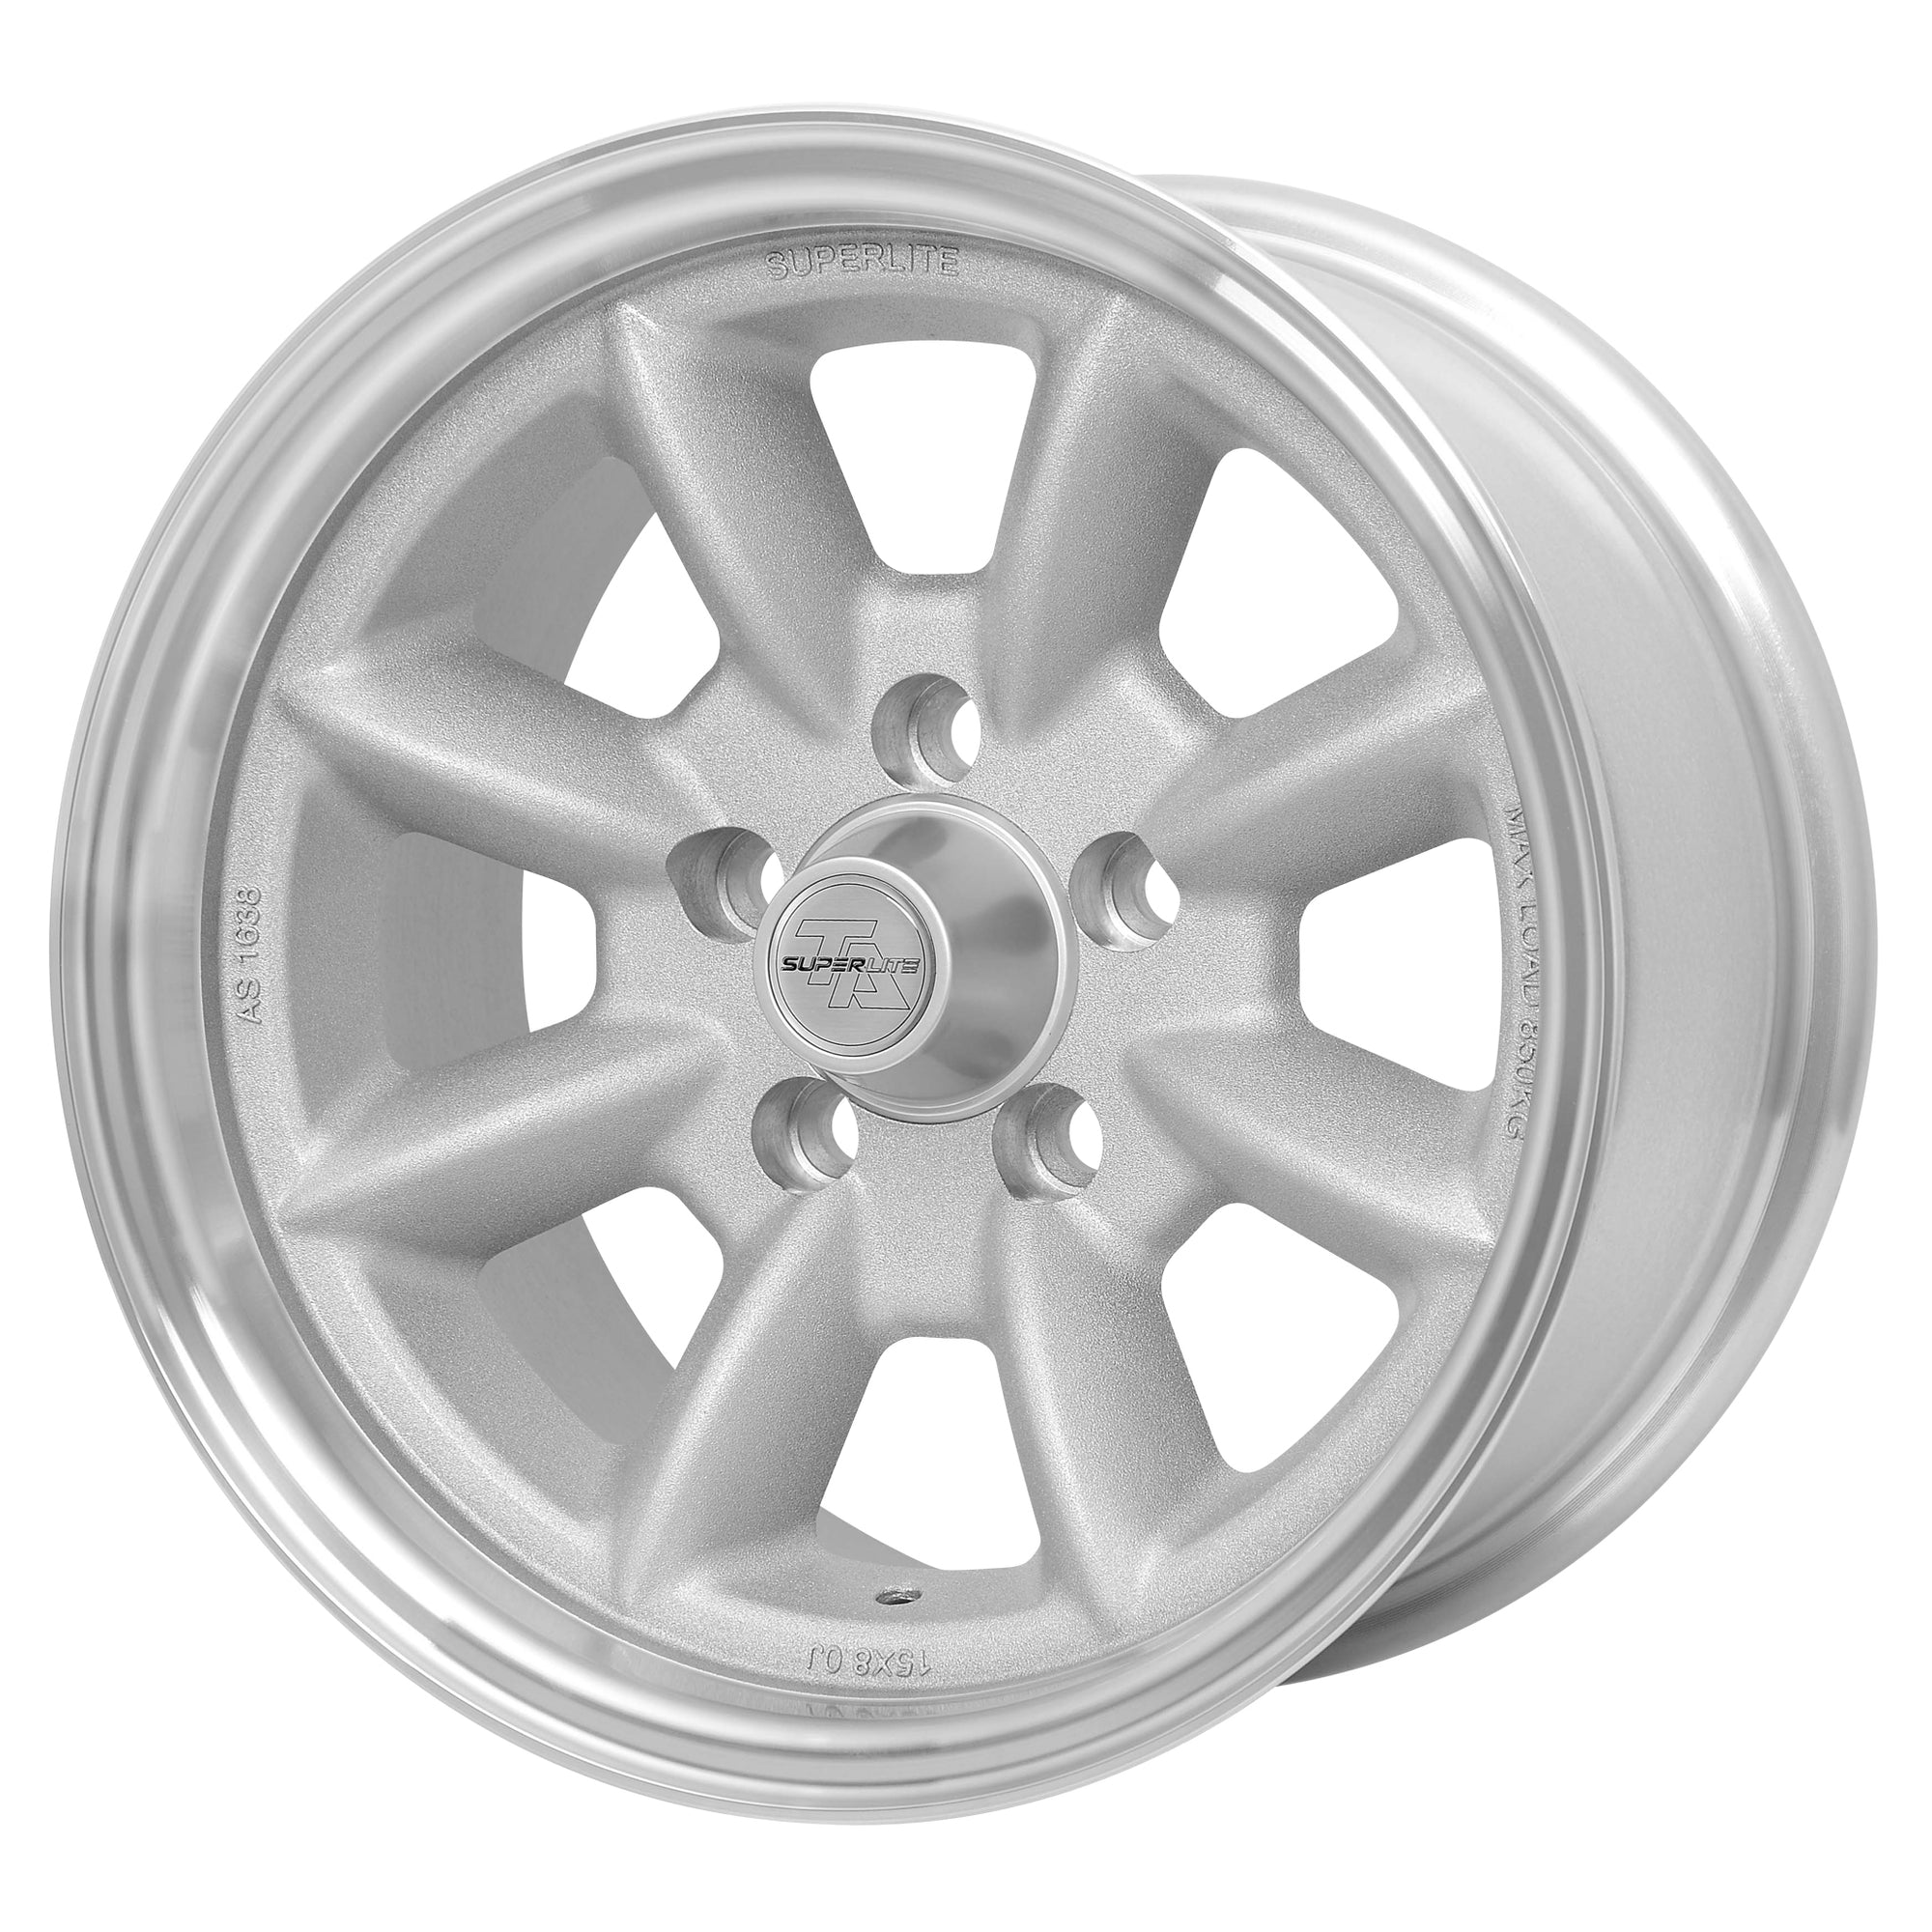 "Superlite 15x8 5x120.65 5"" Backspacing 73mm Centre Bore SPL158250"